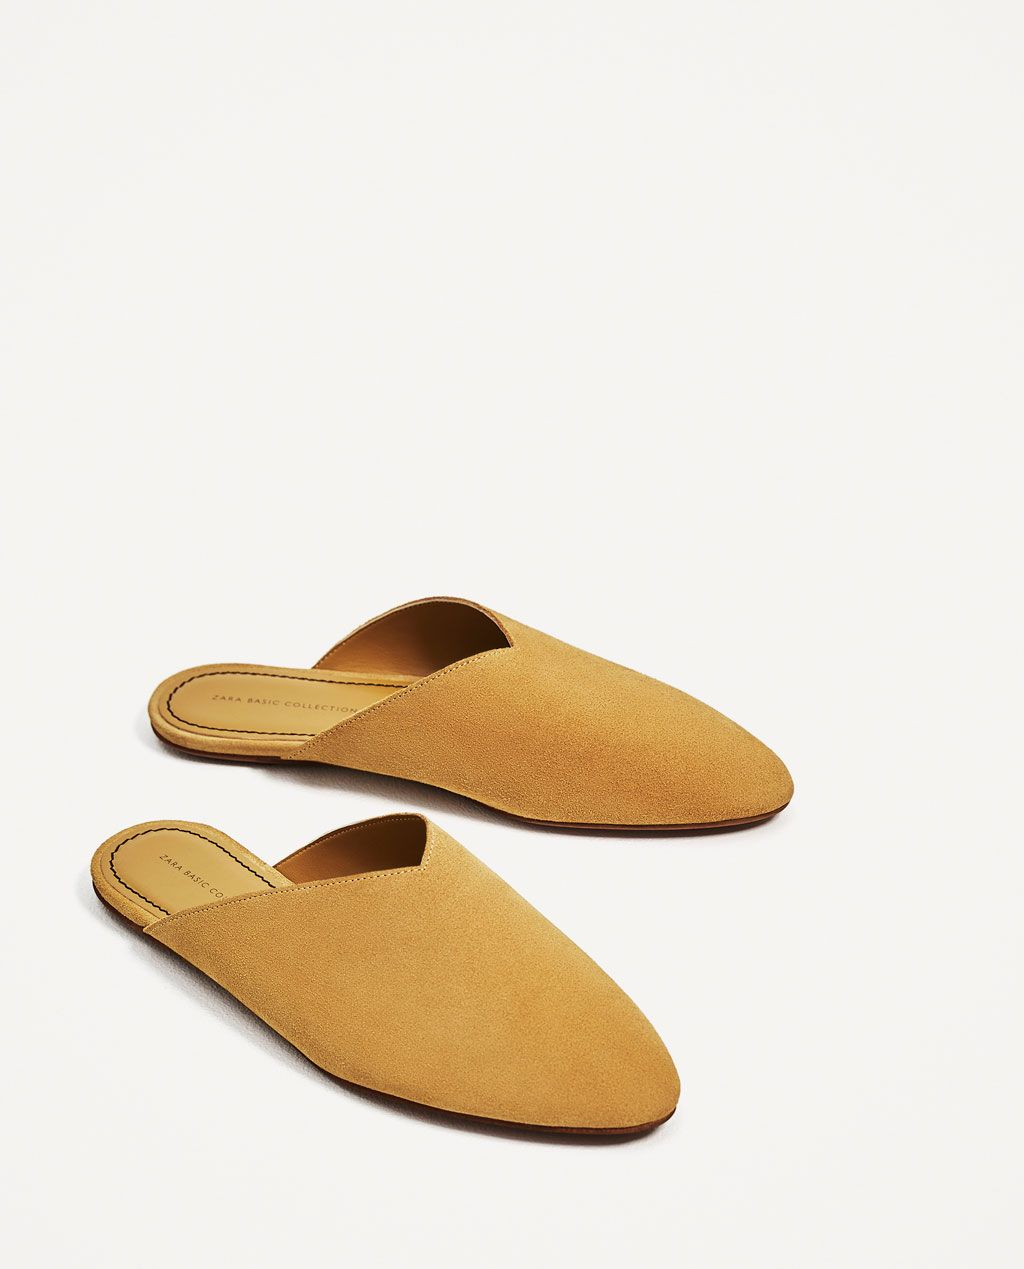 V-CUT LEATHER SLIDES-View all-SHOES-WOMAN | ZARA United States